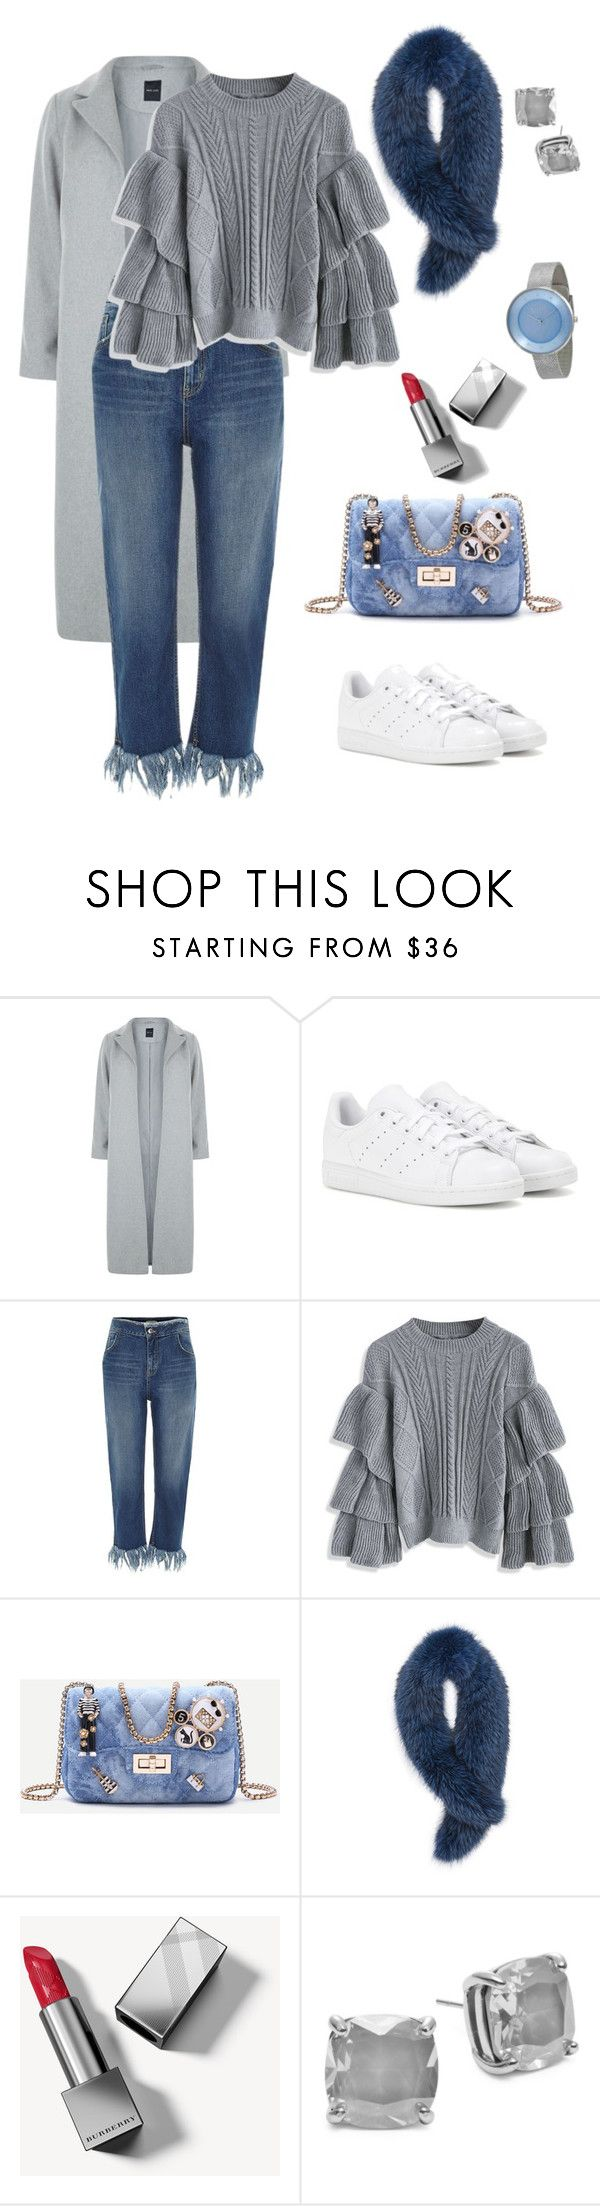 """""""Ootd: day#3"""" by pana-canaj on Polyvore featuring moda, New Look, adidas, River Island, Chicwish, Andrew Marc, Burberry, Kate Spade e Skagen"""